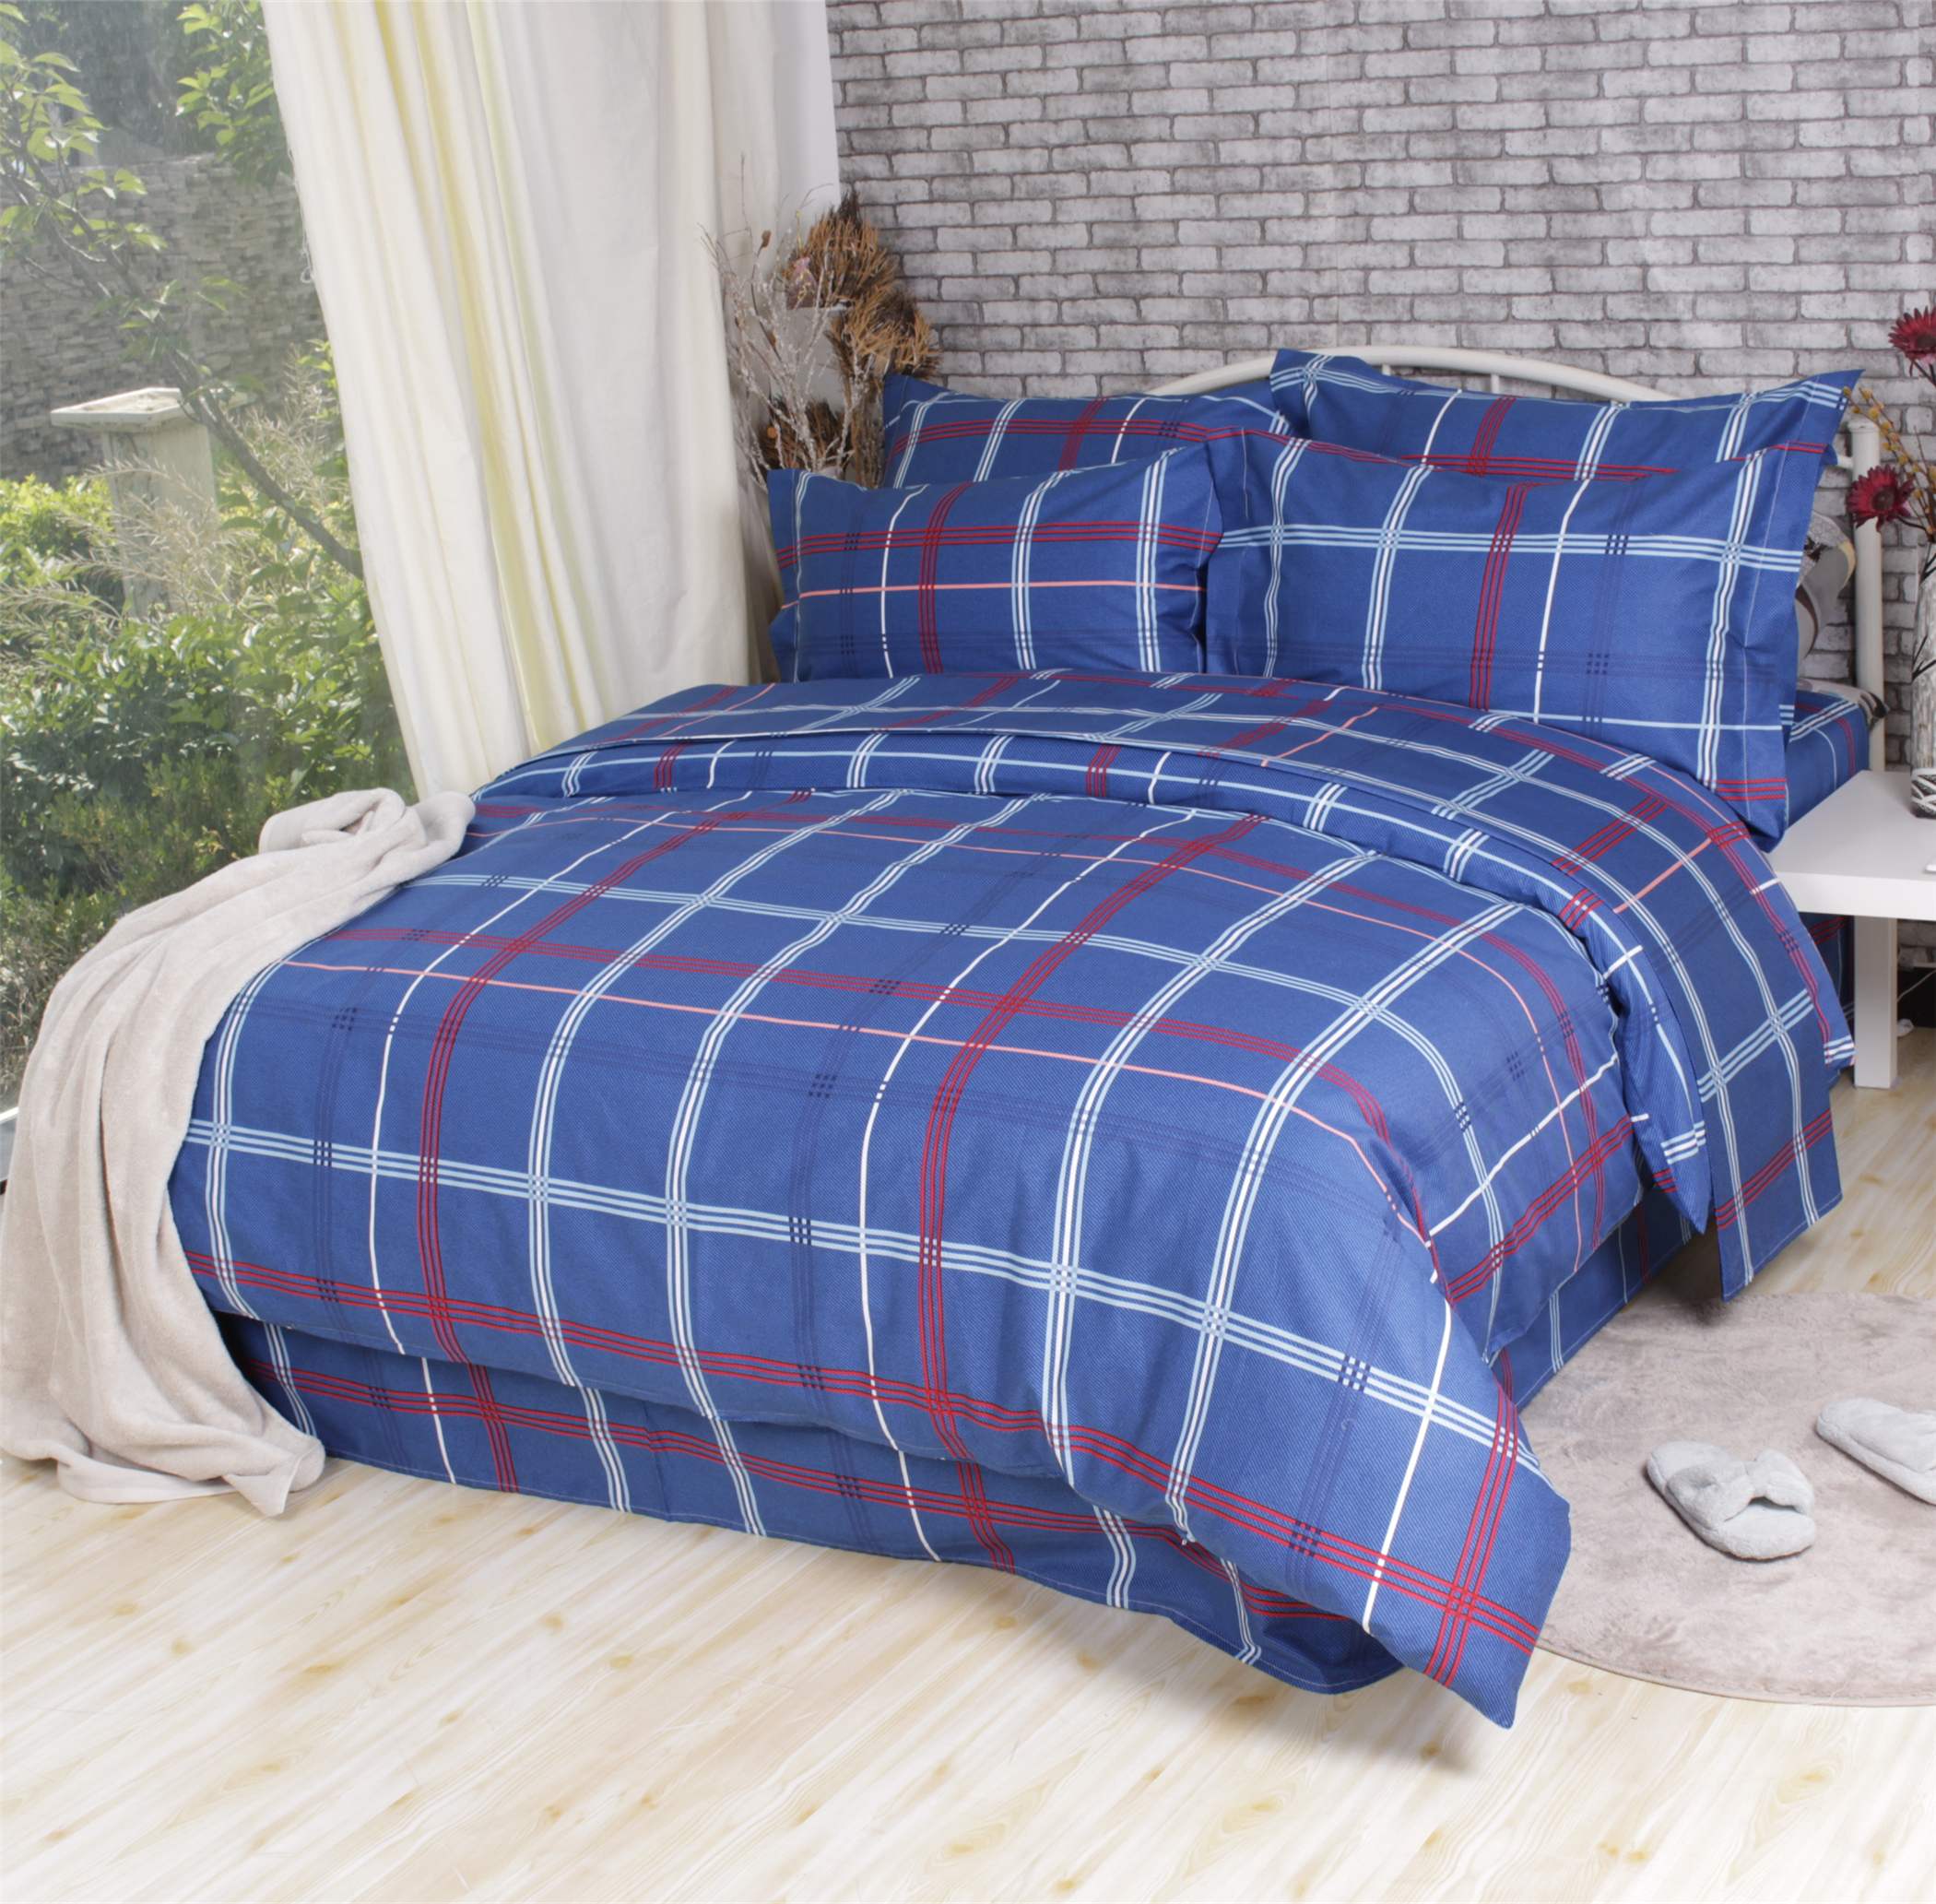 Grid Queen Size 100 Cotton Bed Sheets